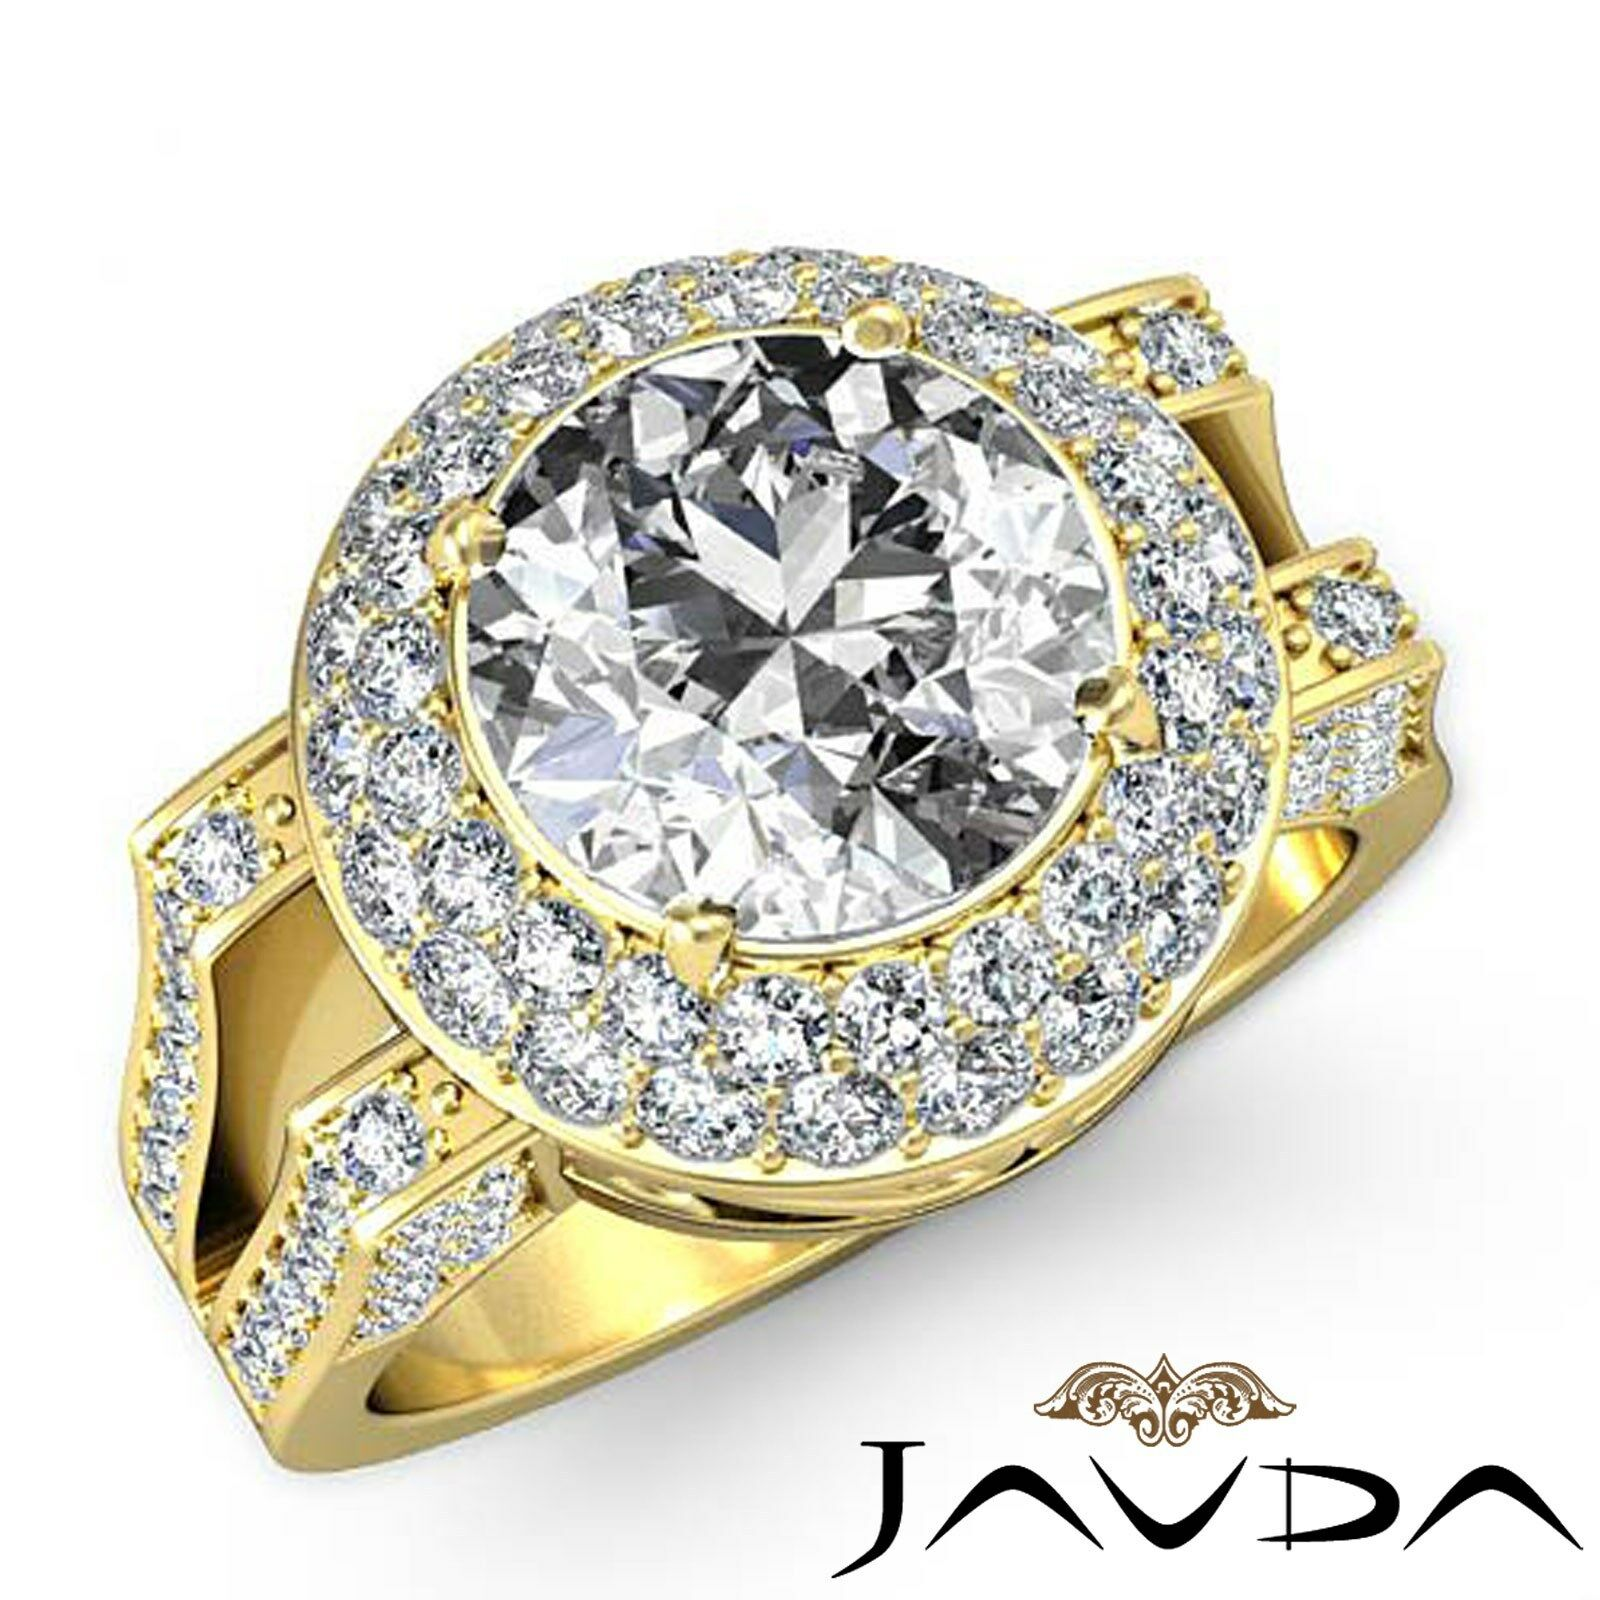 Double Halo Split Shank Round Diamond Engagement Pave Set Ring GIA F VS1 2.6 Ct